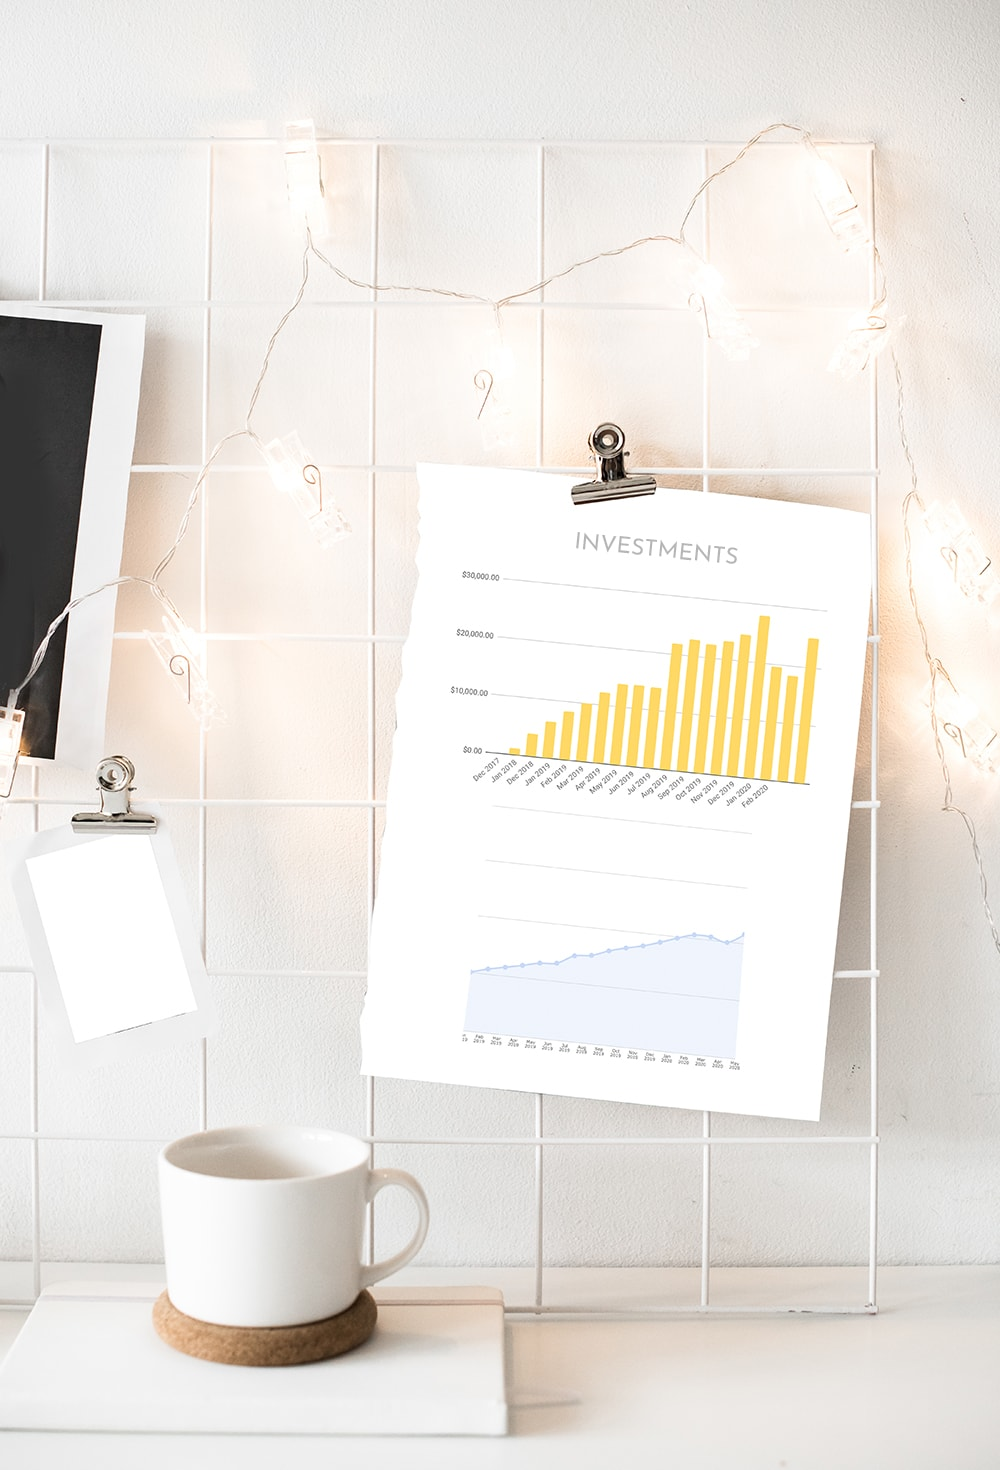 Photo of a paper sheet attached to wall with some investment graphs